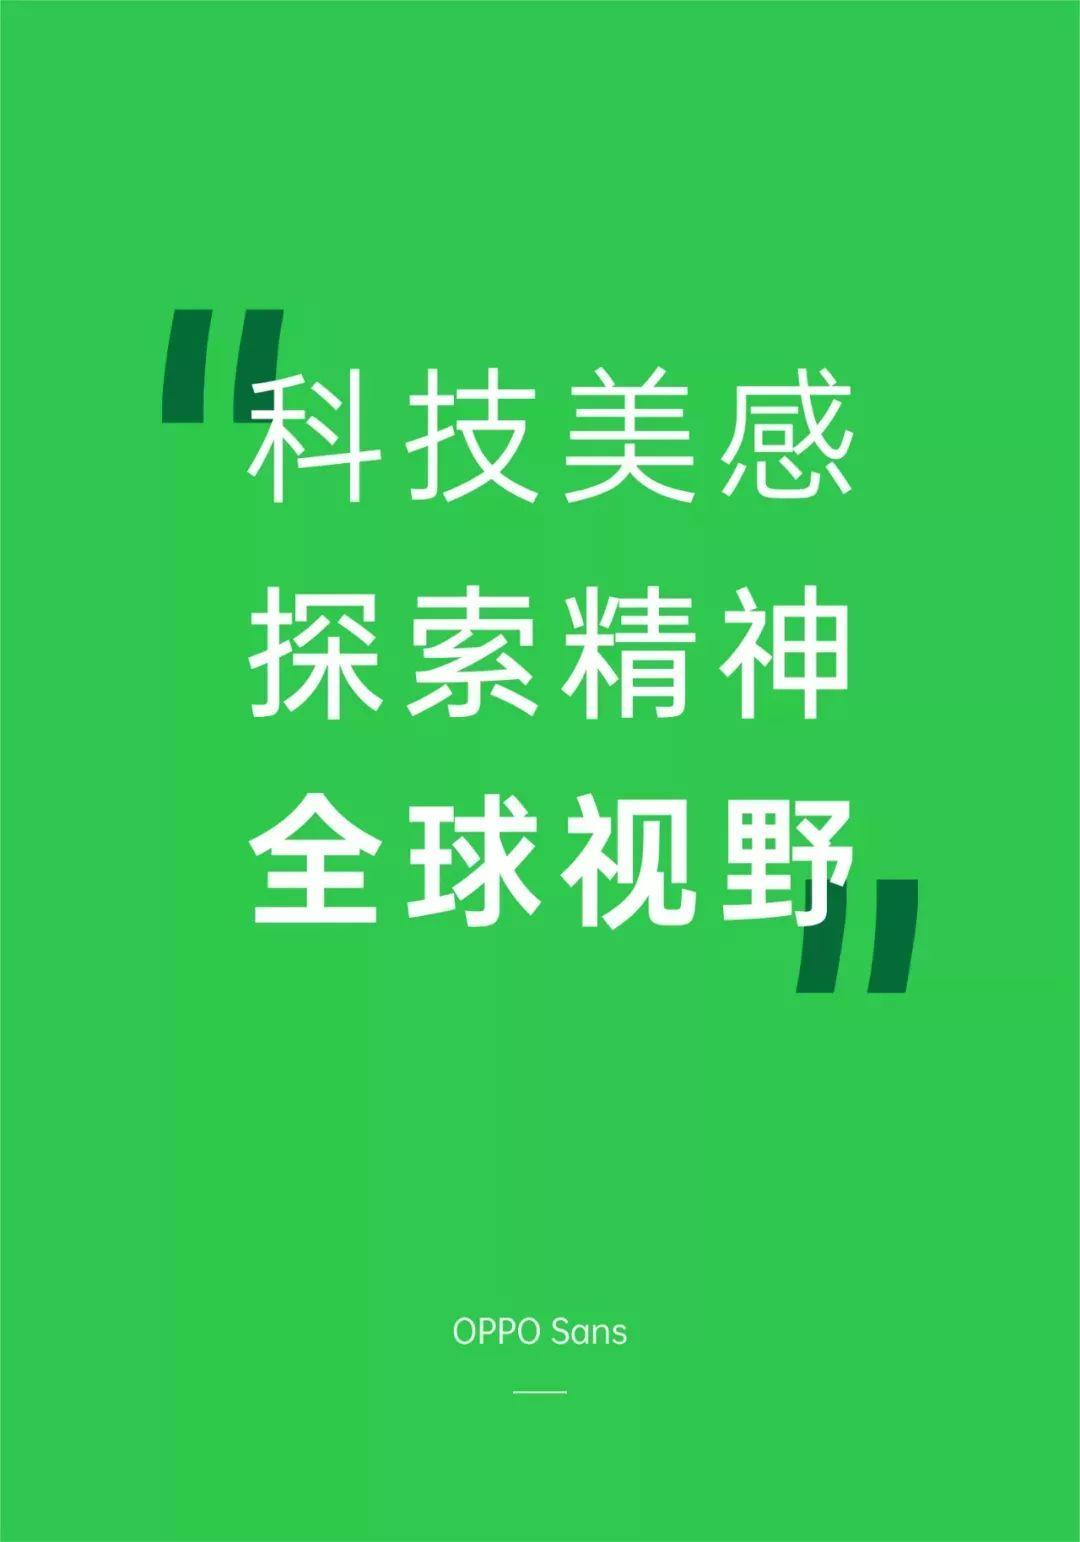 OPPO Sans Chinese font, free commercial font download